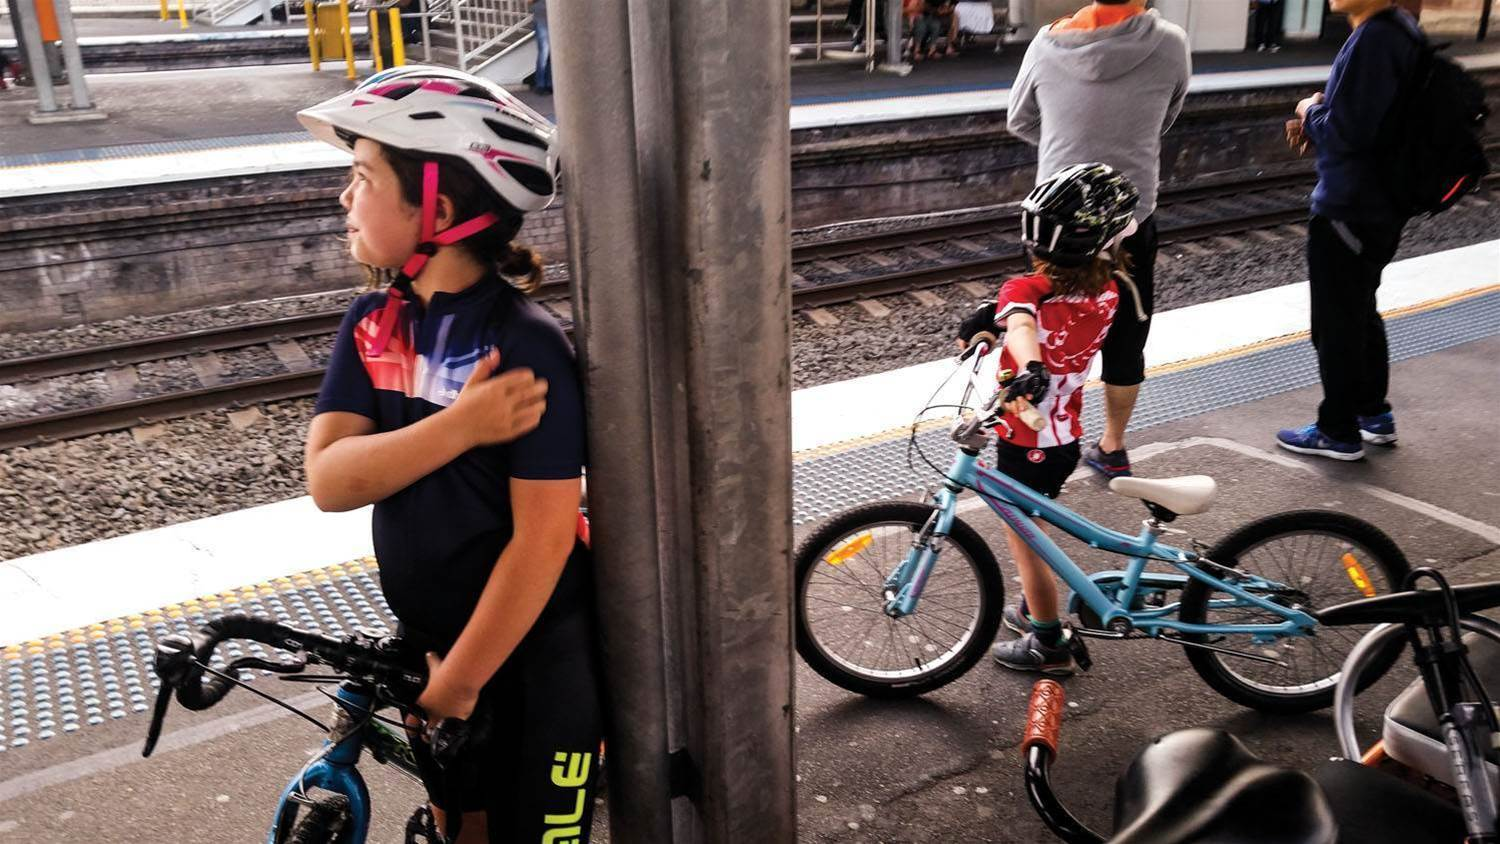 Cycling with kids can be child's play